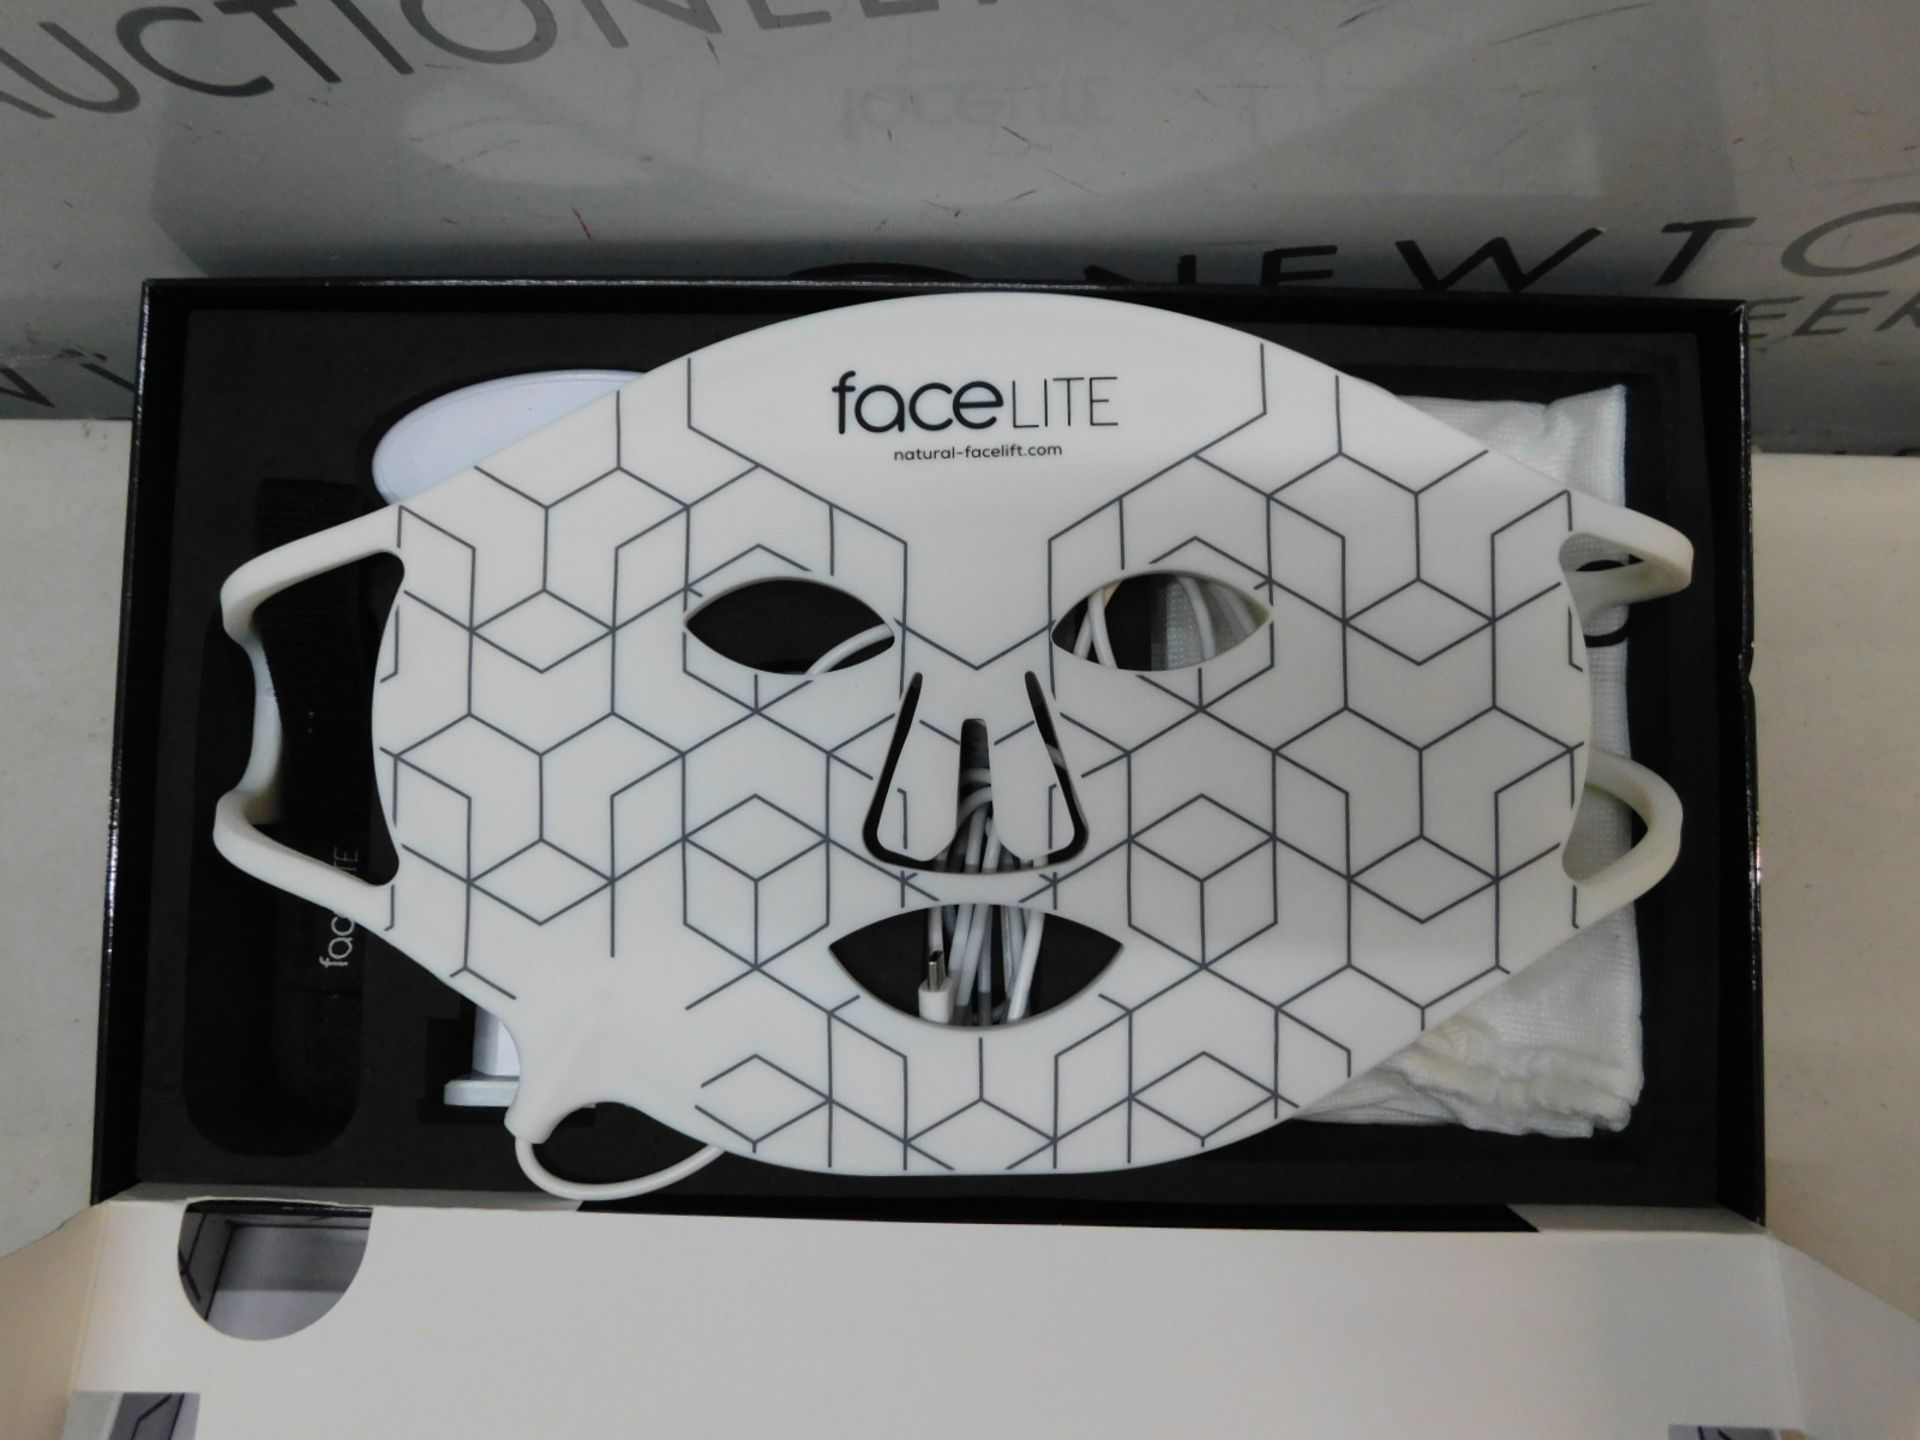 1 BOXED FACELITE BEAUTY BOOSTING LED FACE MASK RRP £349.99